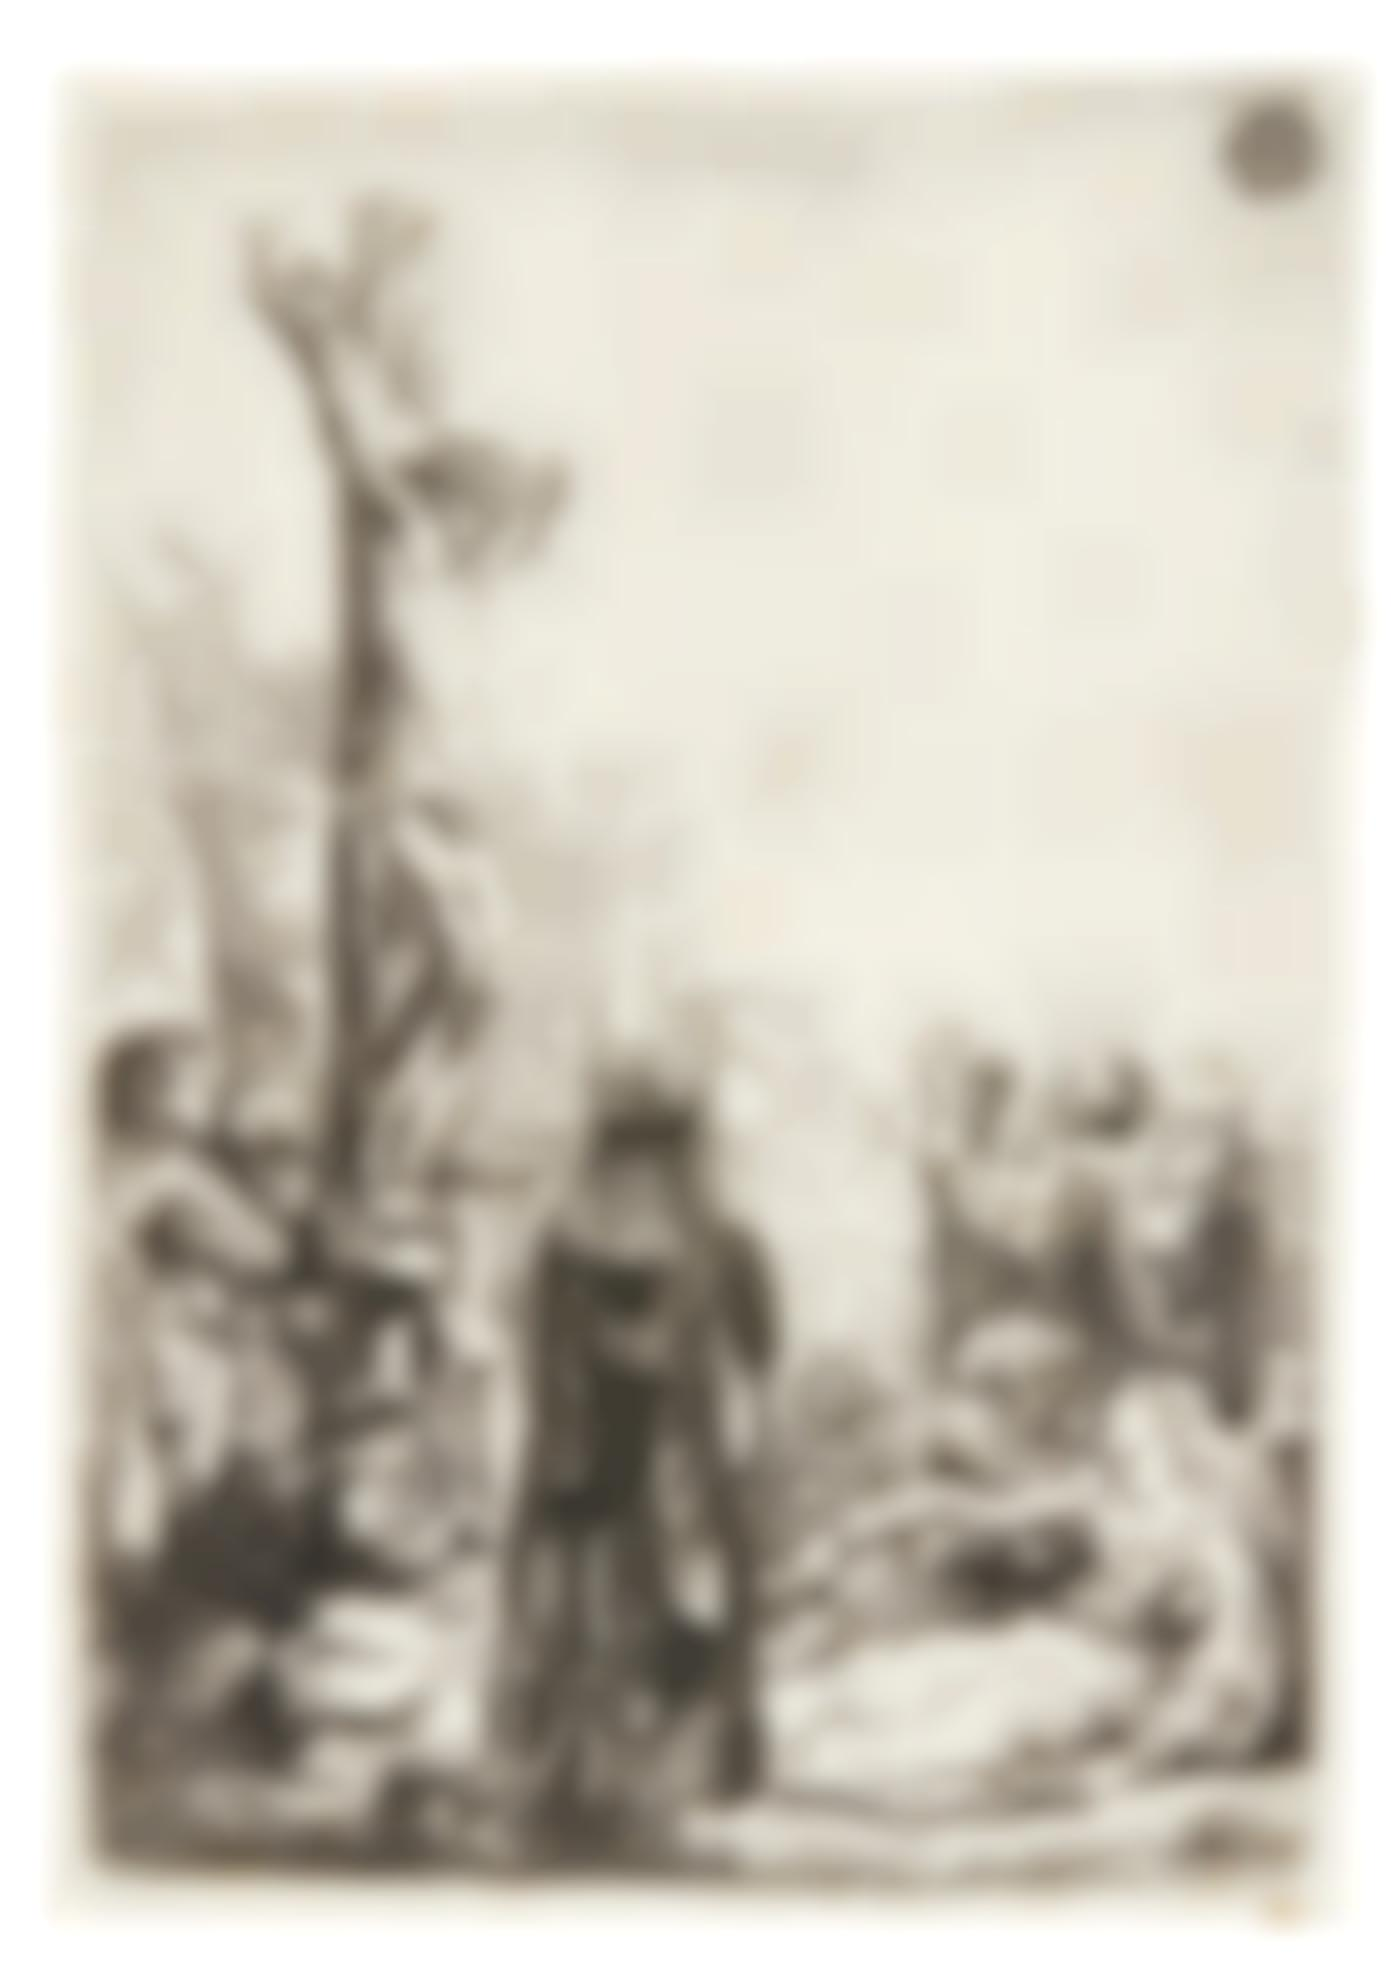 Rembrandt van Rijn-The Crucifixion: Small Plate (B., Holl. 80; New Holl. 143; H. 123)-1635